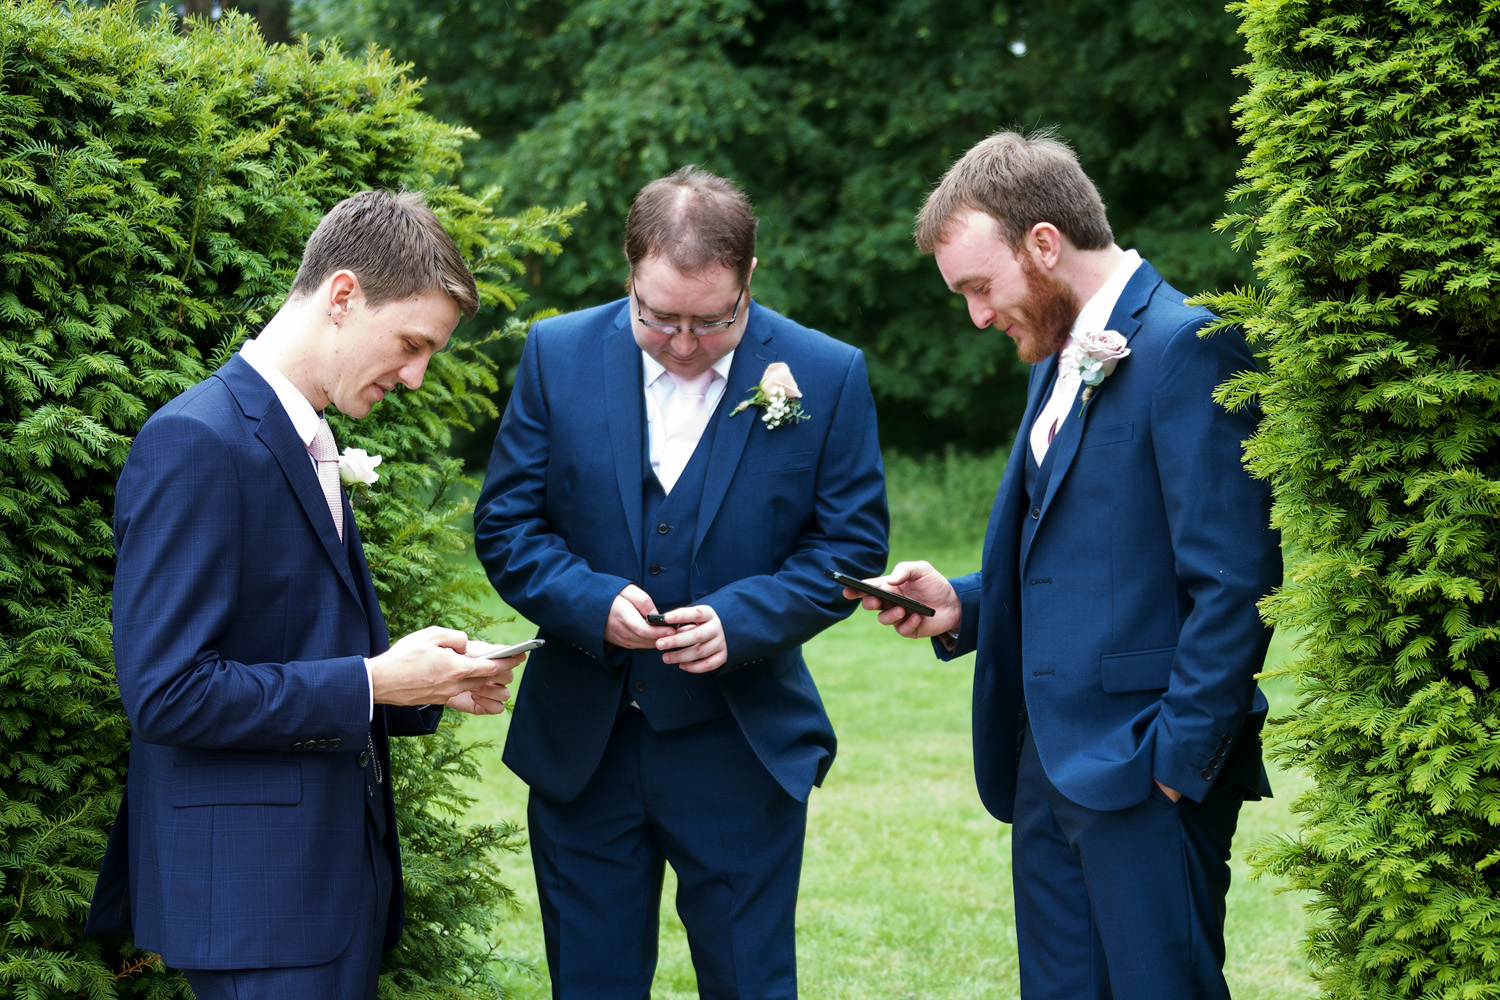 Easthampstead_Park_Wedding_Photographer_Bracknell_Berkshire_014.jpg